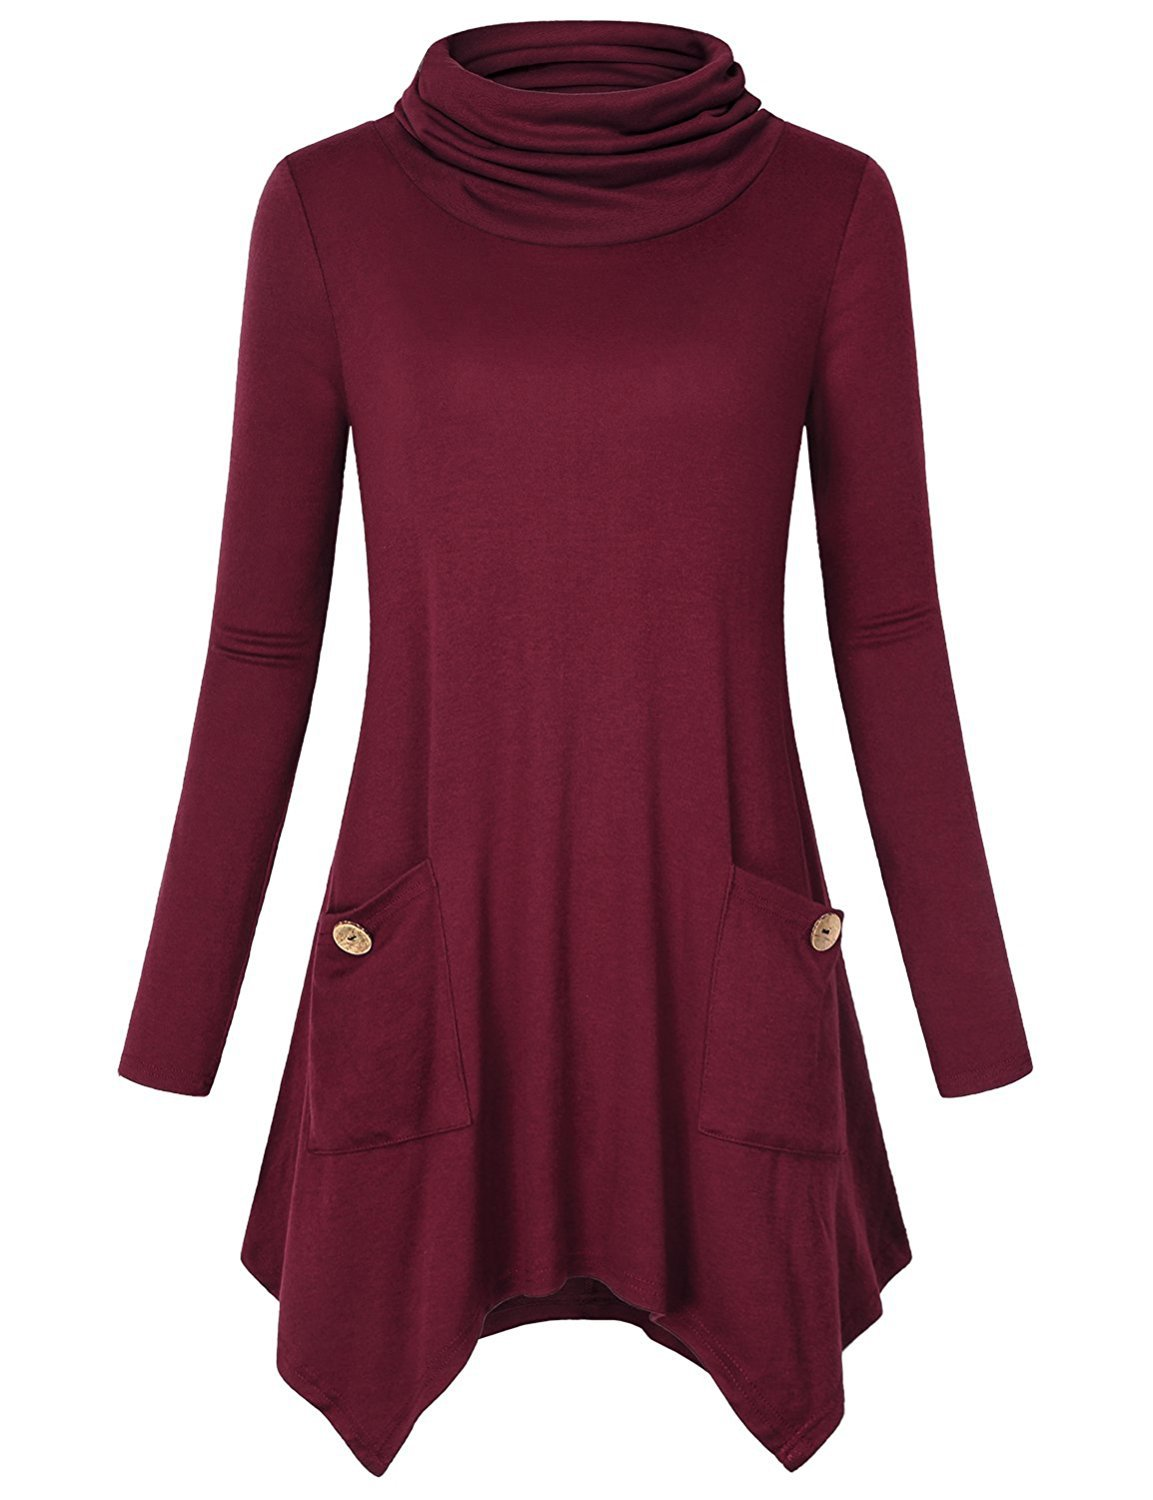 Anna Smith Pocket Tunic Tops, Womens Turtleneck Asymmetric Hem Long Sleeve A-line Flared Loose Fit Plain T Shirt Knit Pullover Stylish Pleated Trapeze Blouses for Leggings Wine XX-Large